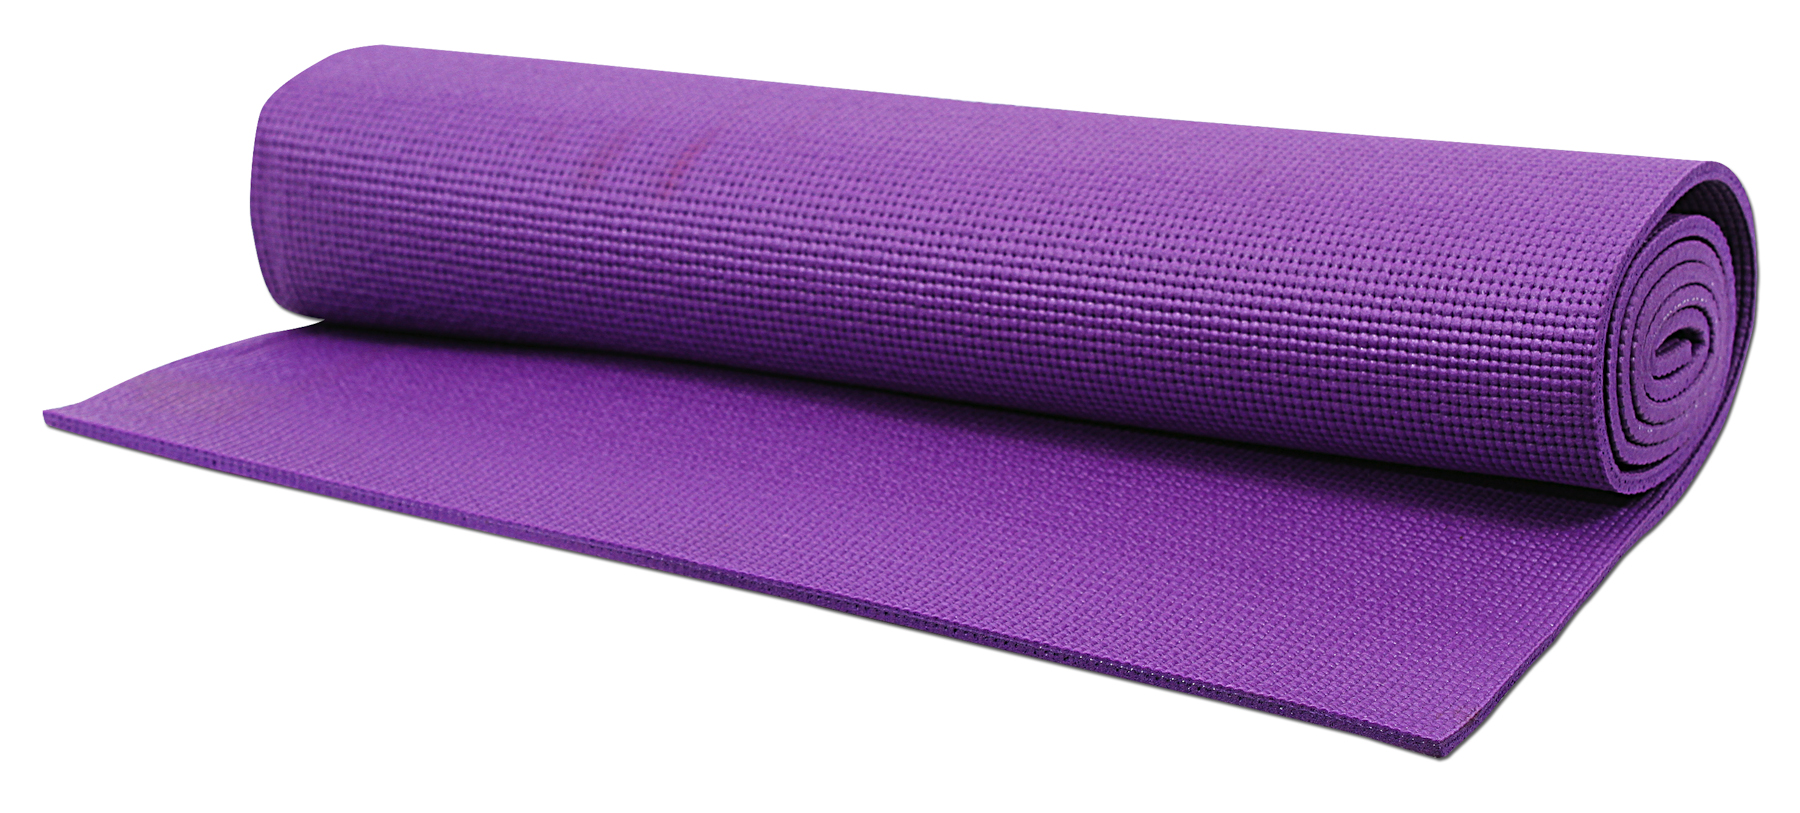 pilates yoga floor sports mat dp outdoors com travel amazon jade mats purple